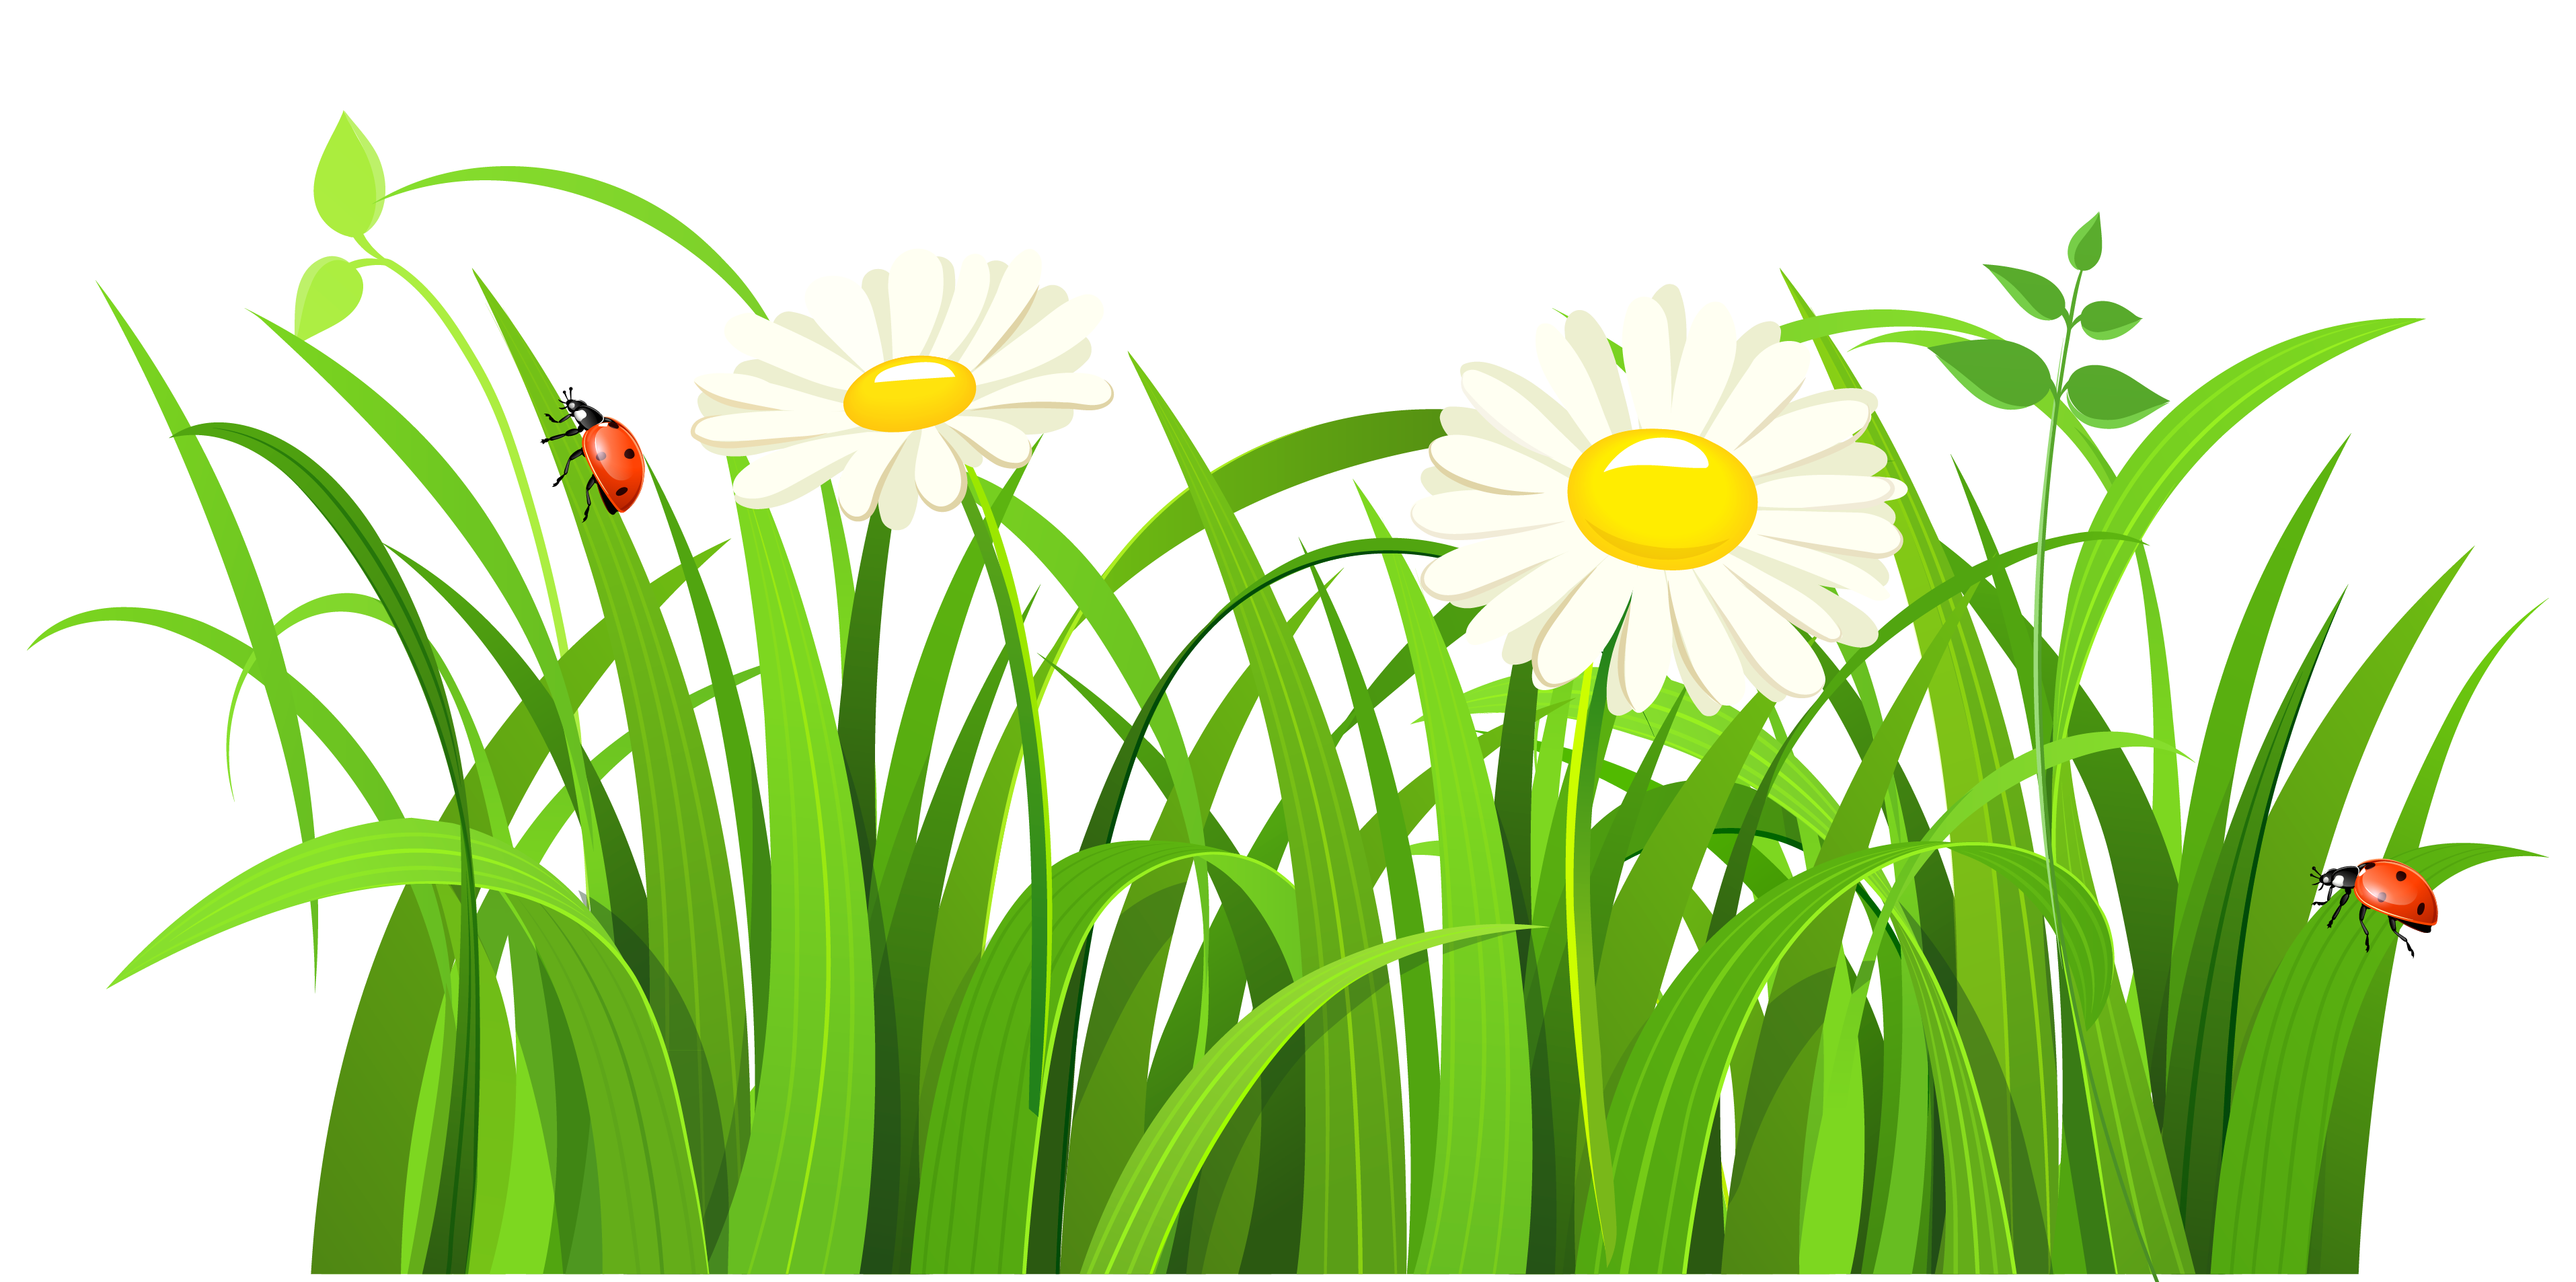 Grass clipart images.